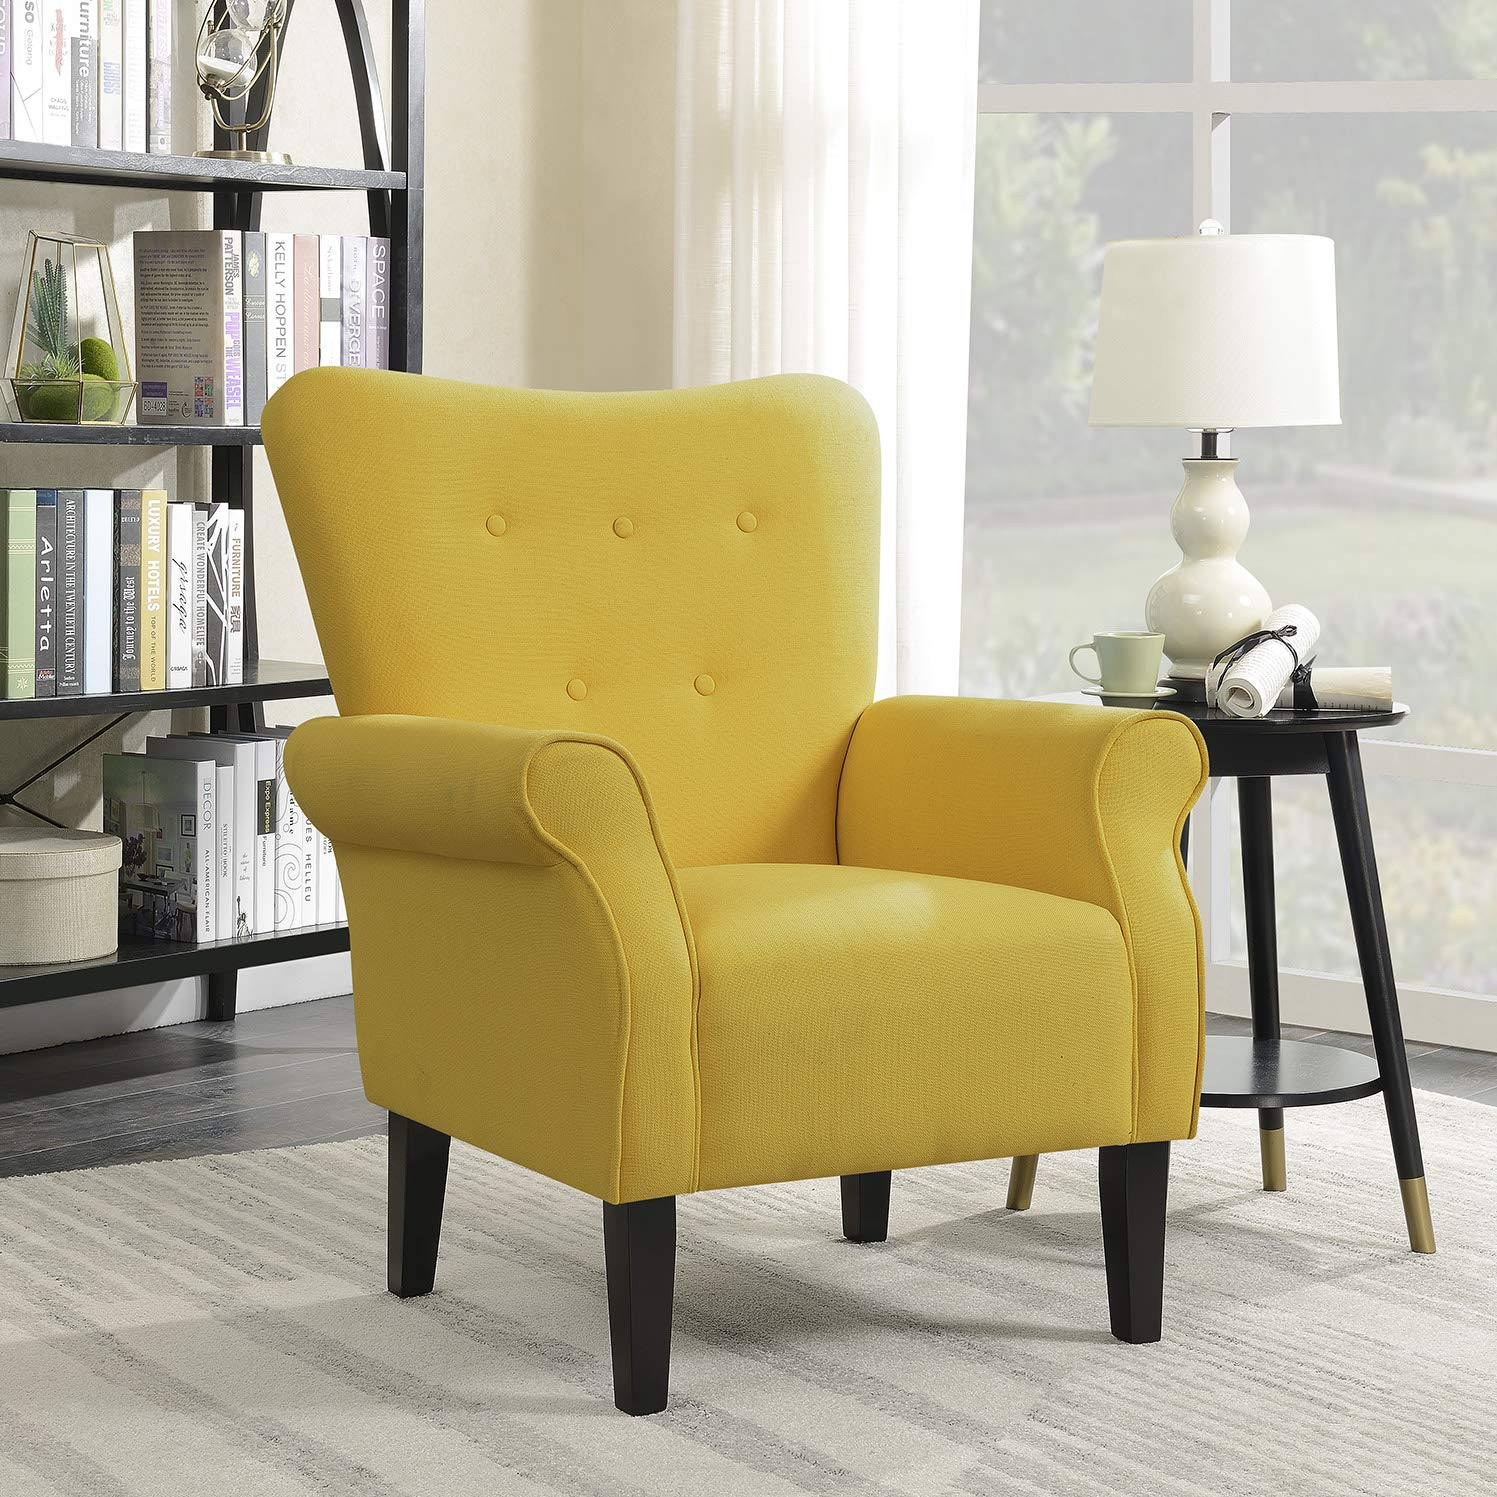 Traveller Location: Belleze Modern Accent Chair Roll Arm Linen Living Room Bedroom  Wood Leg (Citrine Yellow): Kitchen & Dining